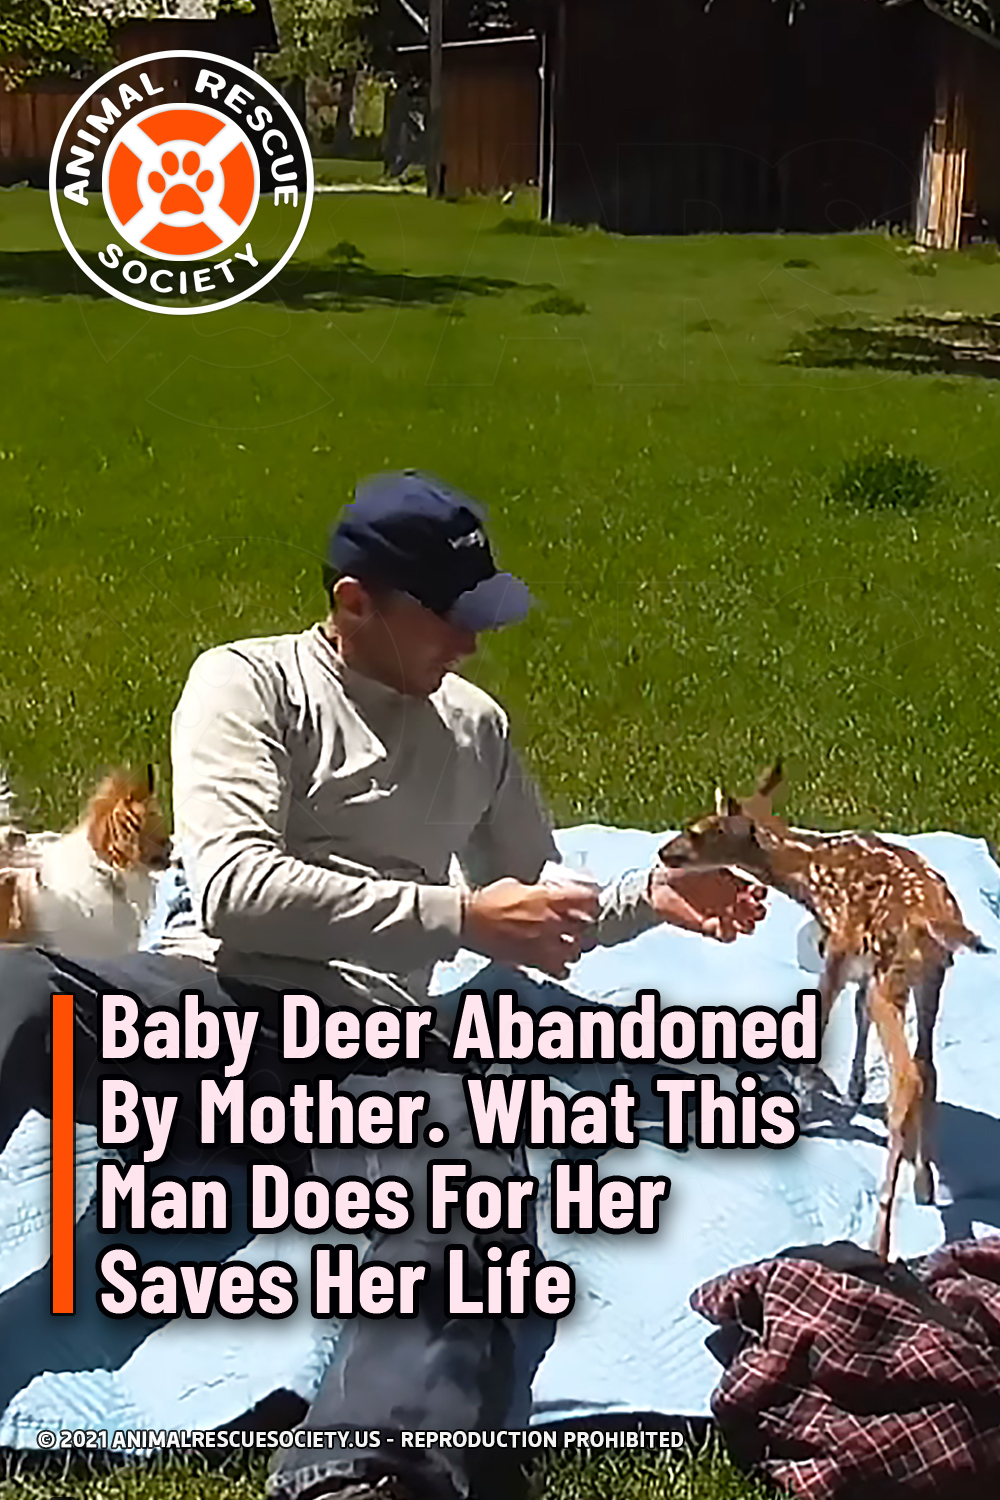 Baby Deer Abandoned By Mother. What This Man Does For Her Saves Her Life